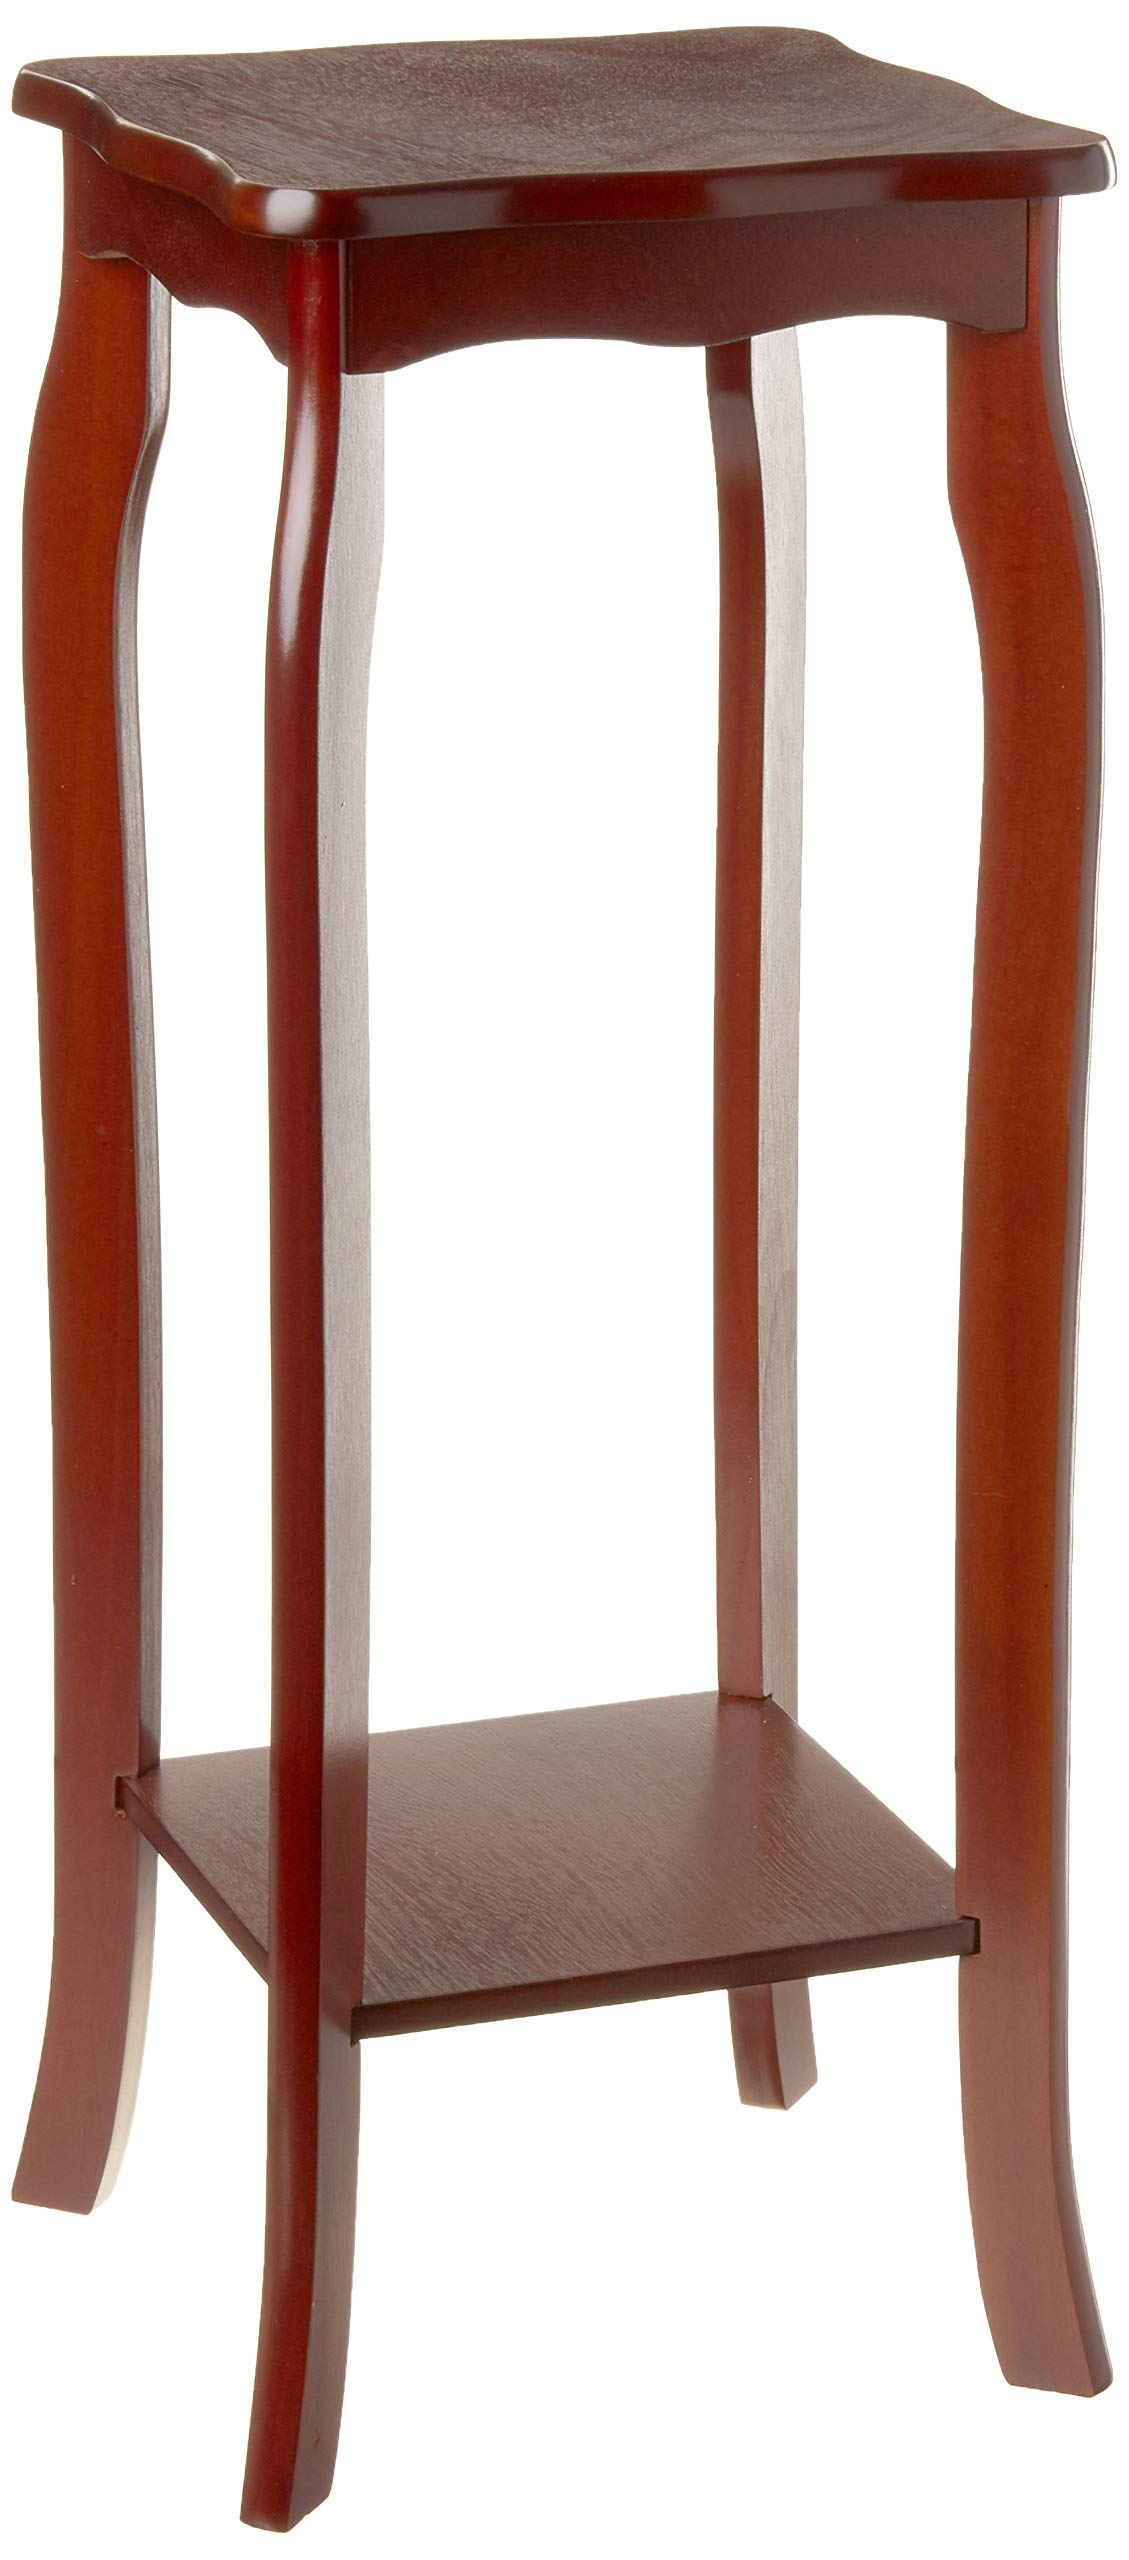 Frenchi Home Furnishing 2 Tier Plant Stand, Mahogany by Frenchi Home Furnishing